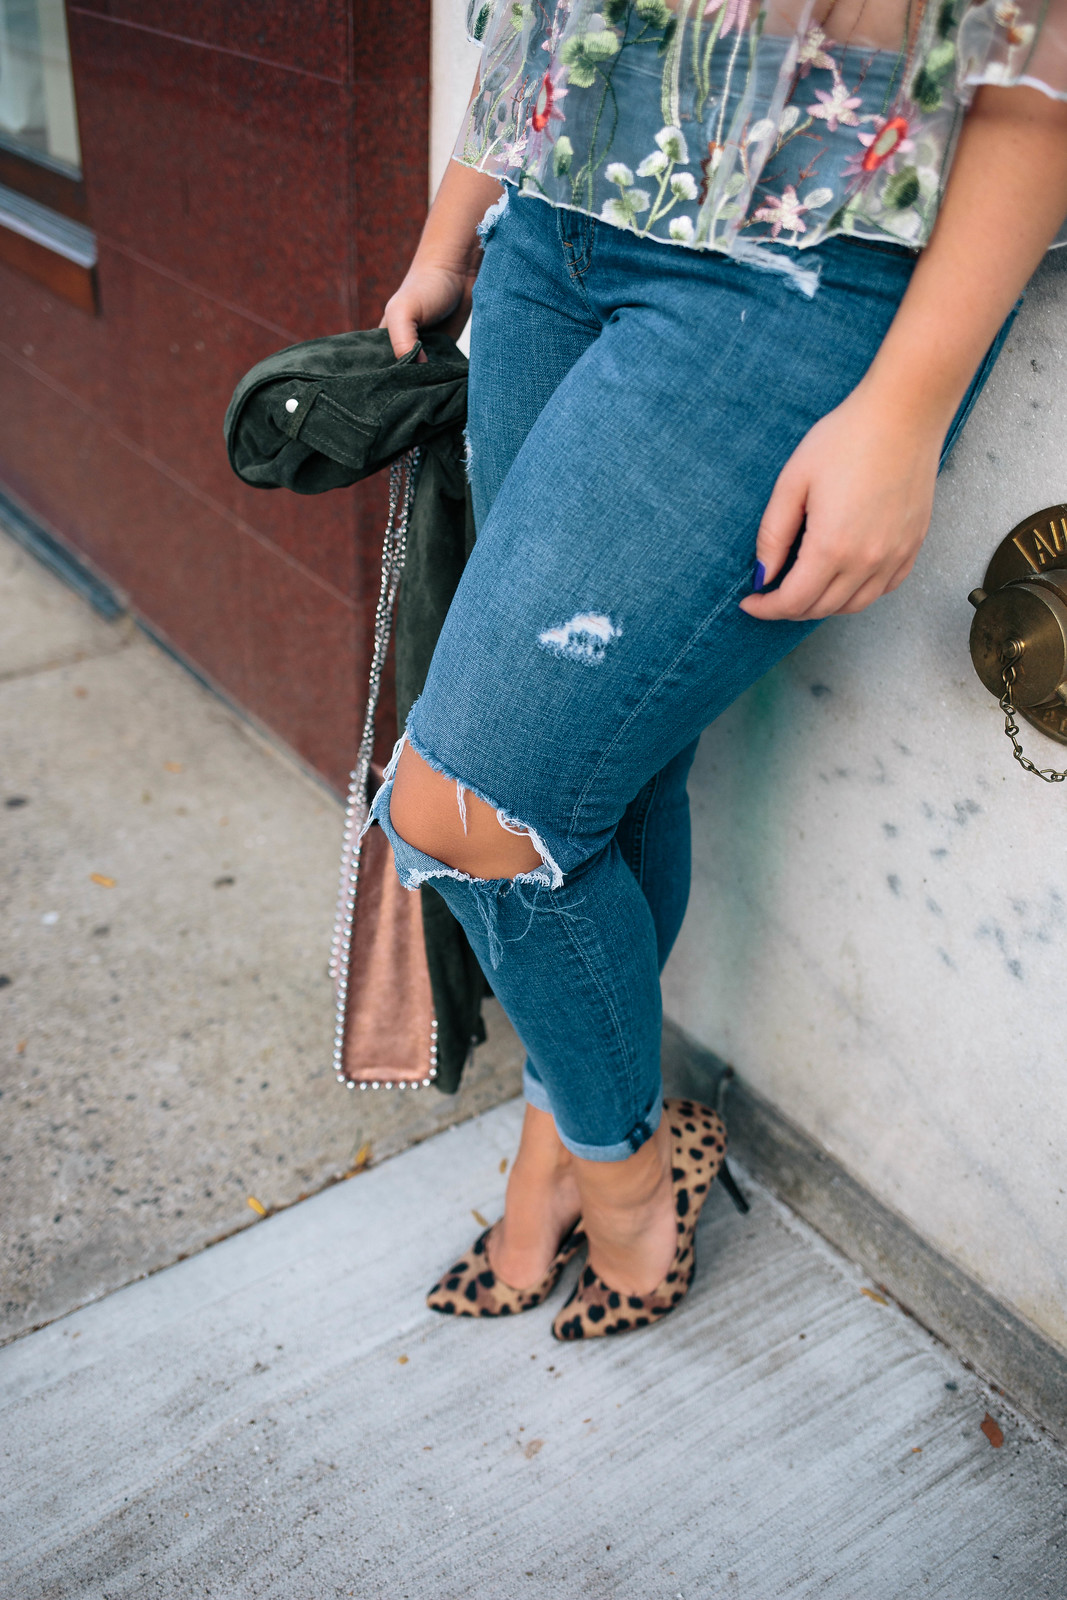 Ripped Knee Girlfriend Blue Denim Jeans Leopard Heels